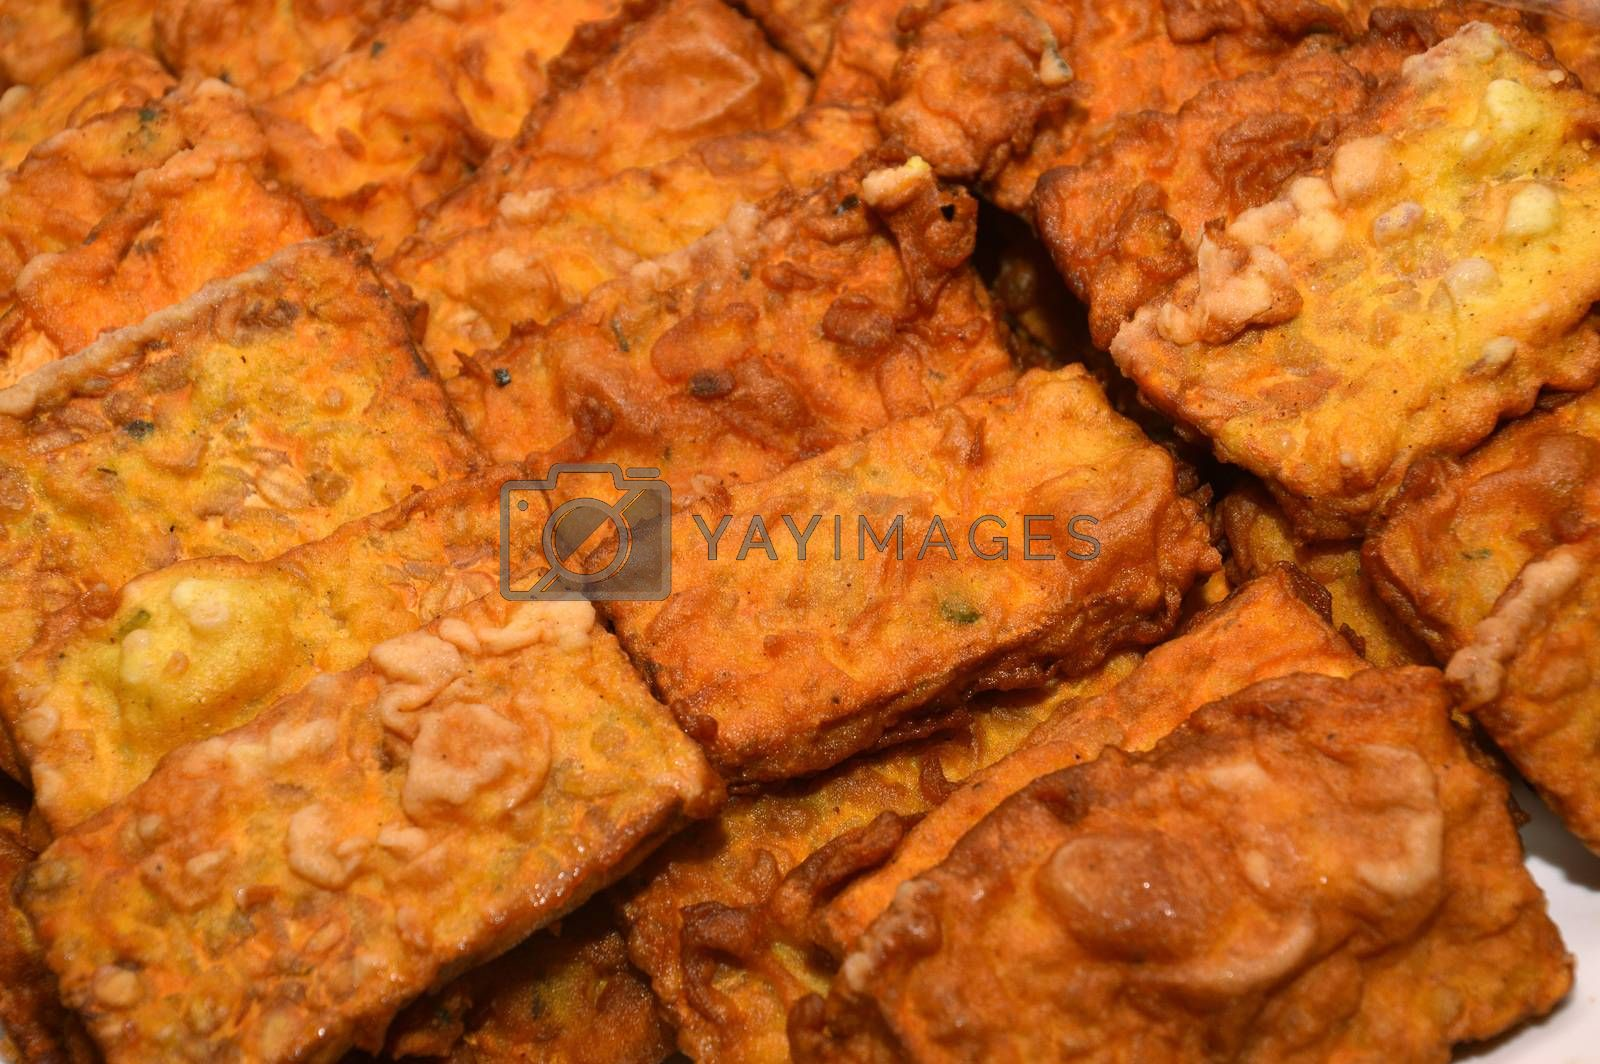 fried tempe, typical snack of Indonesians with the raw material soybeans